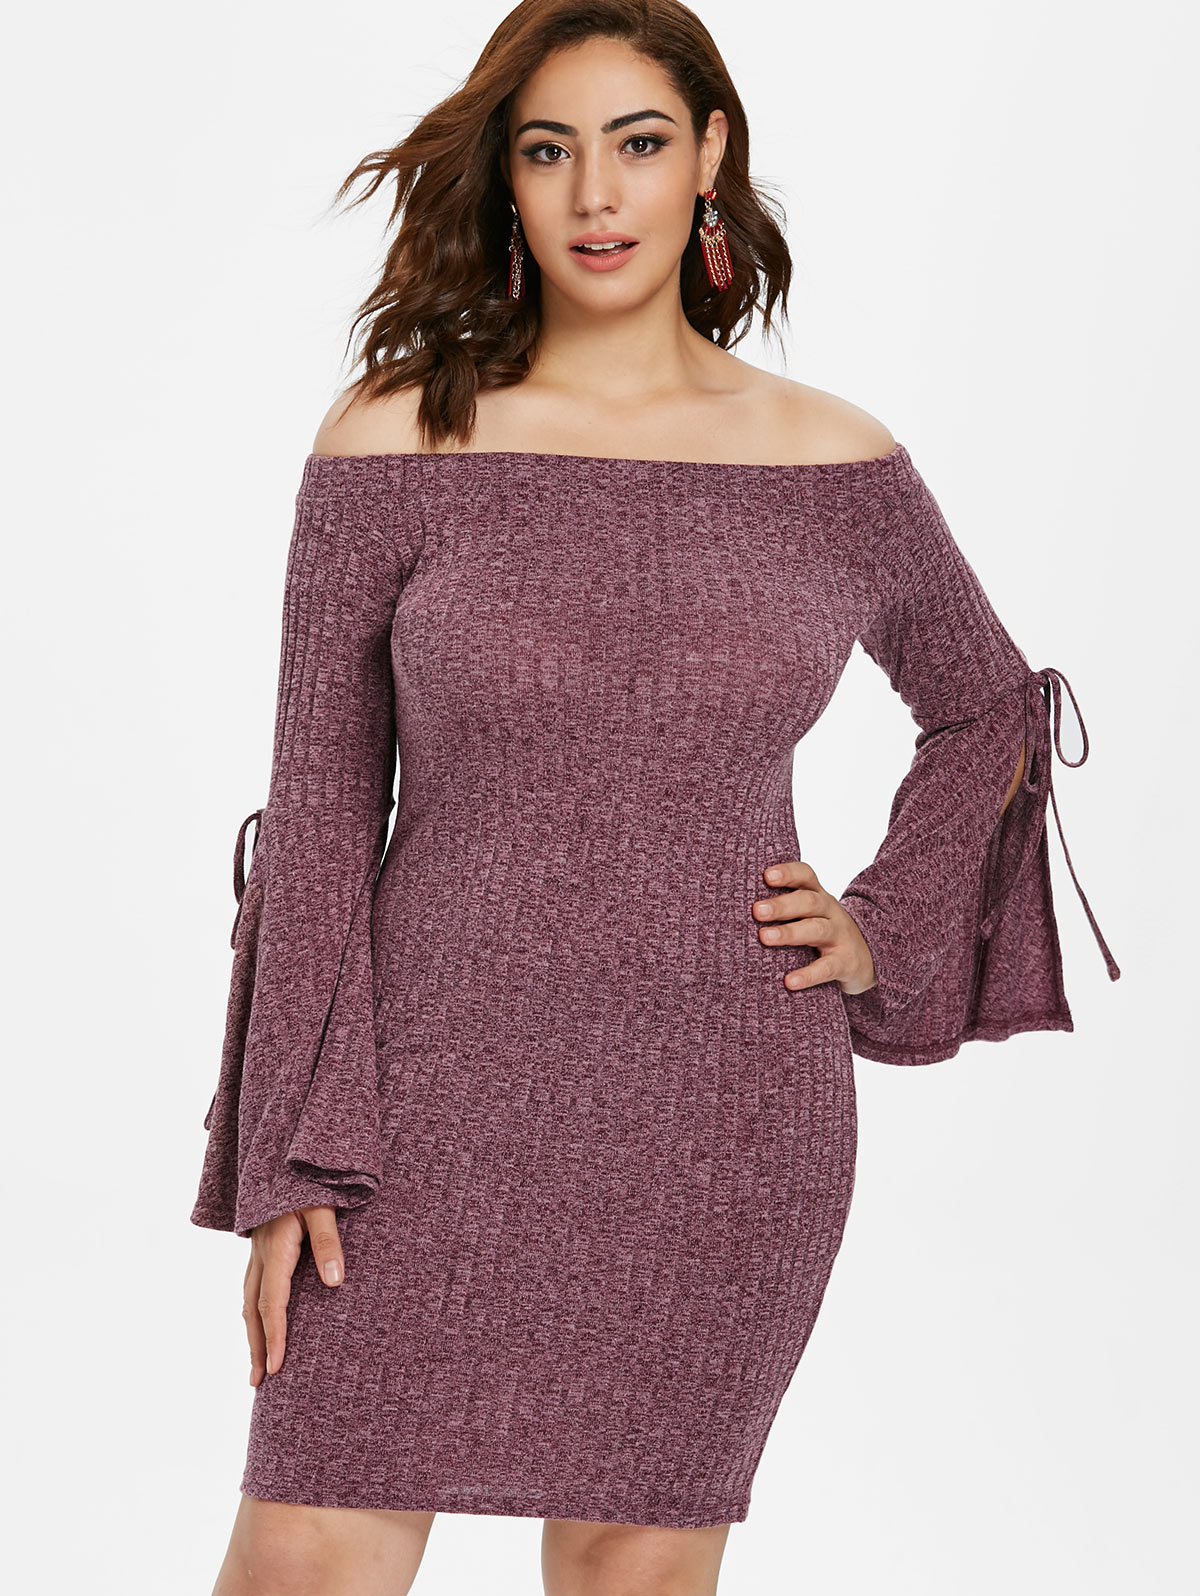 Winter bodycon plus size dresses 36 long jeans made spandex